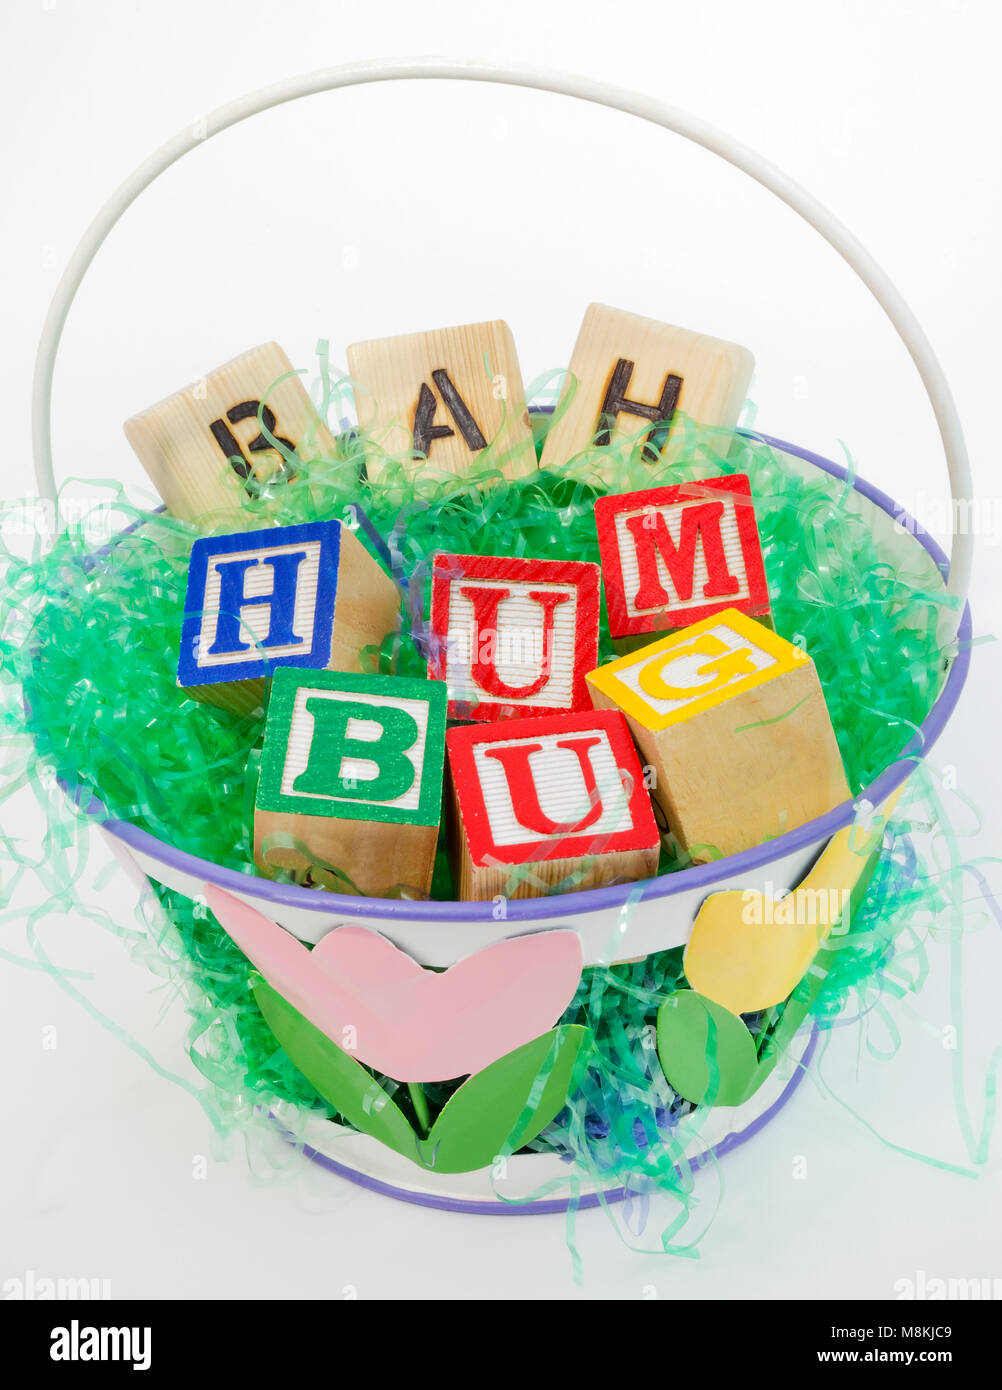 Easter basket filled with grouch's BAH HUMBUG sentiment. - Stock Image